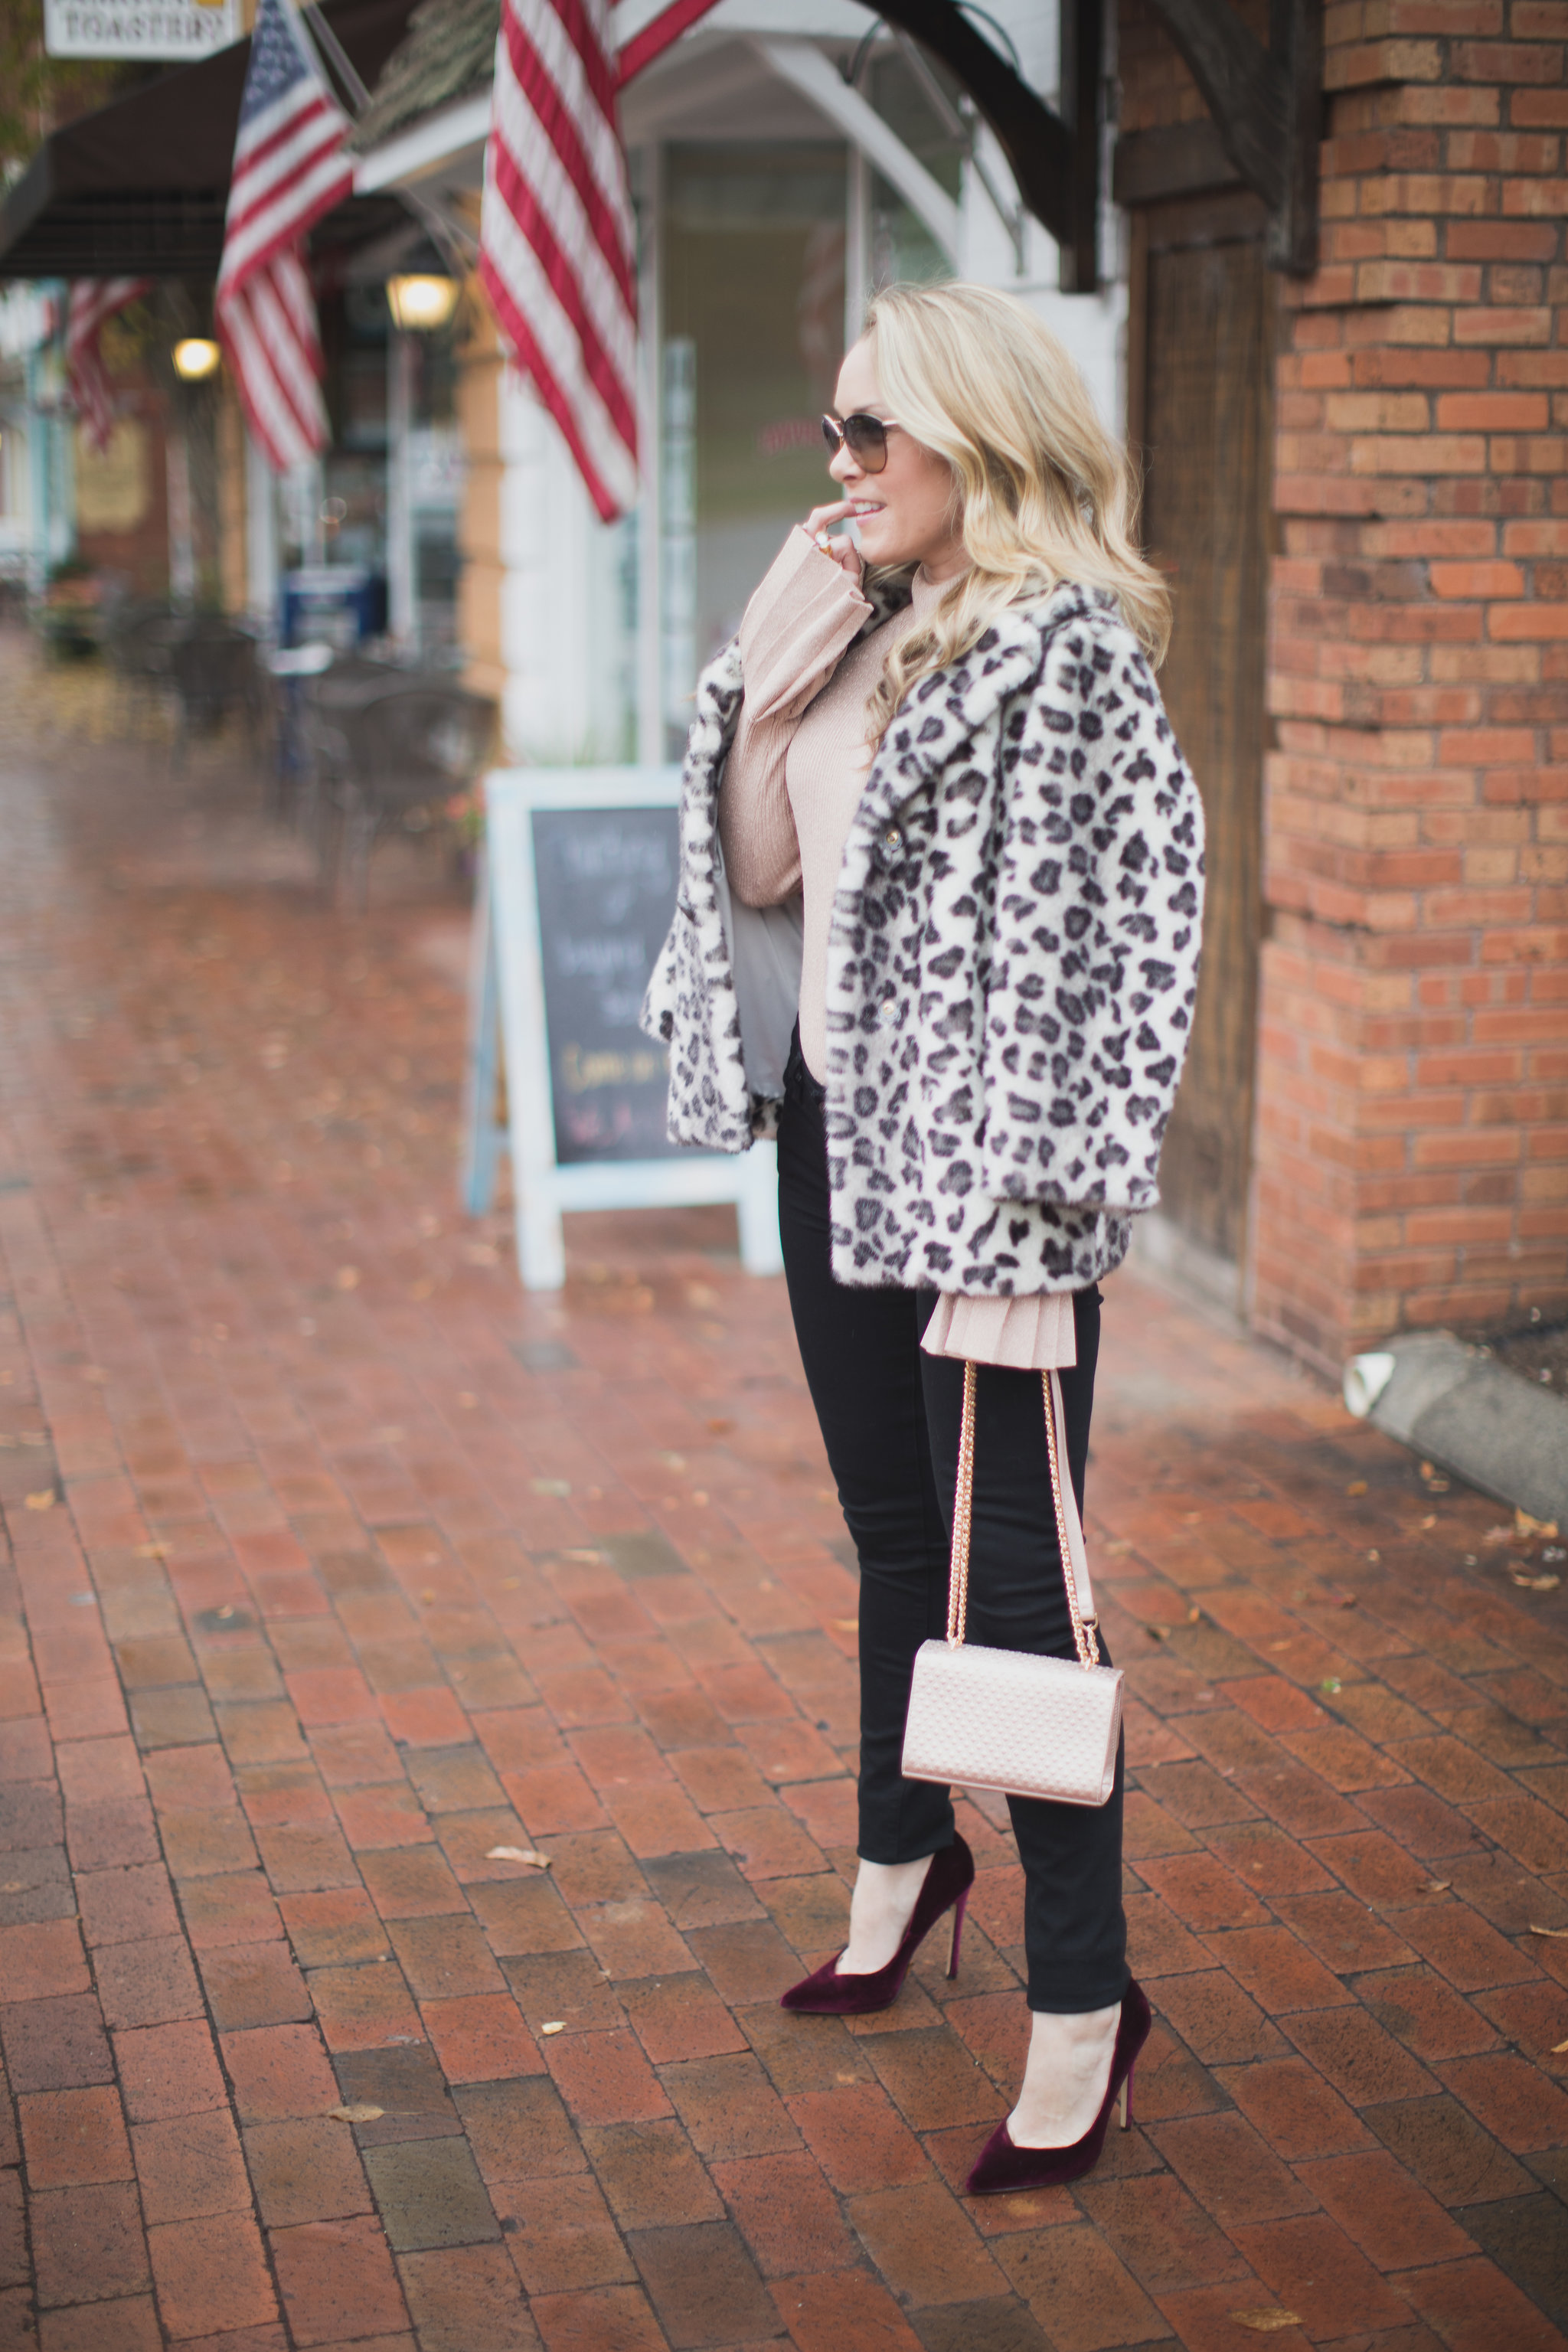 Metallic and leopard. The perfect combo for the holiday season! - Shopping with IFCHIC by North Carolina fashion blogger Every Chic Way